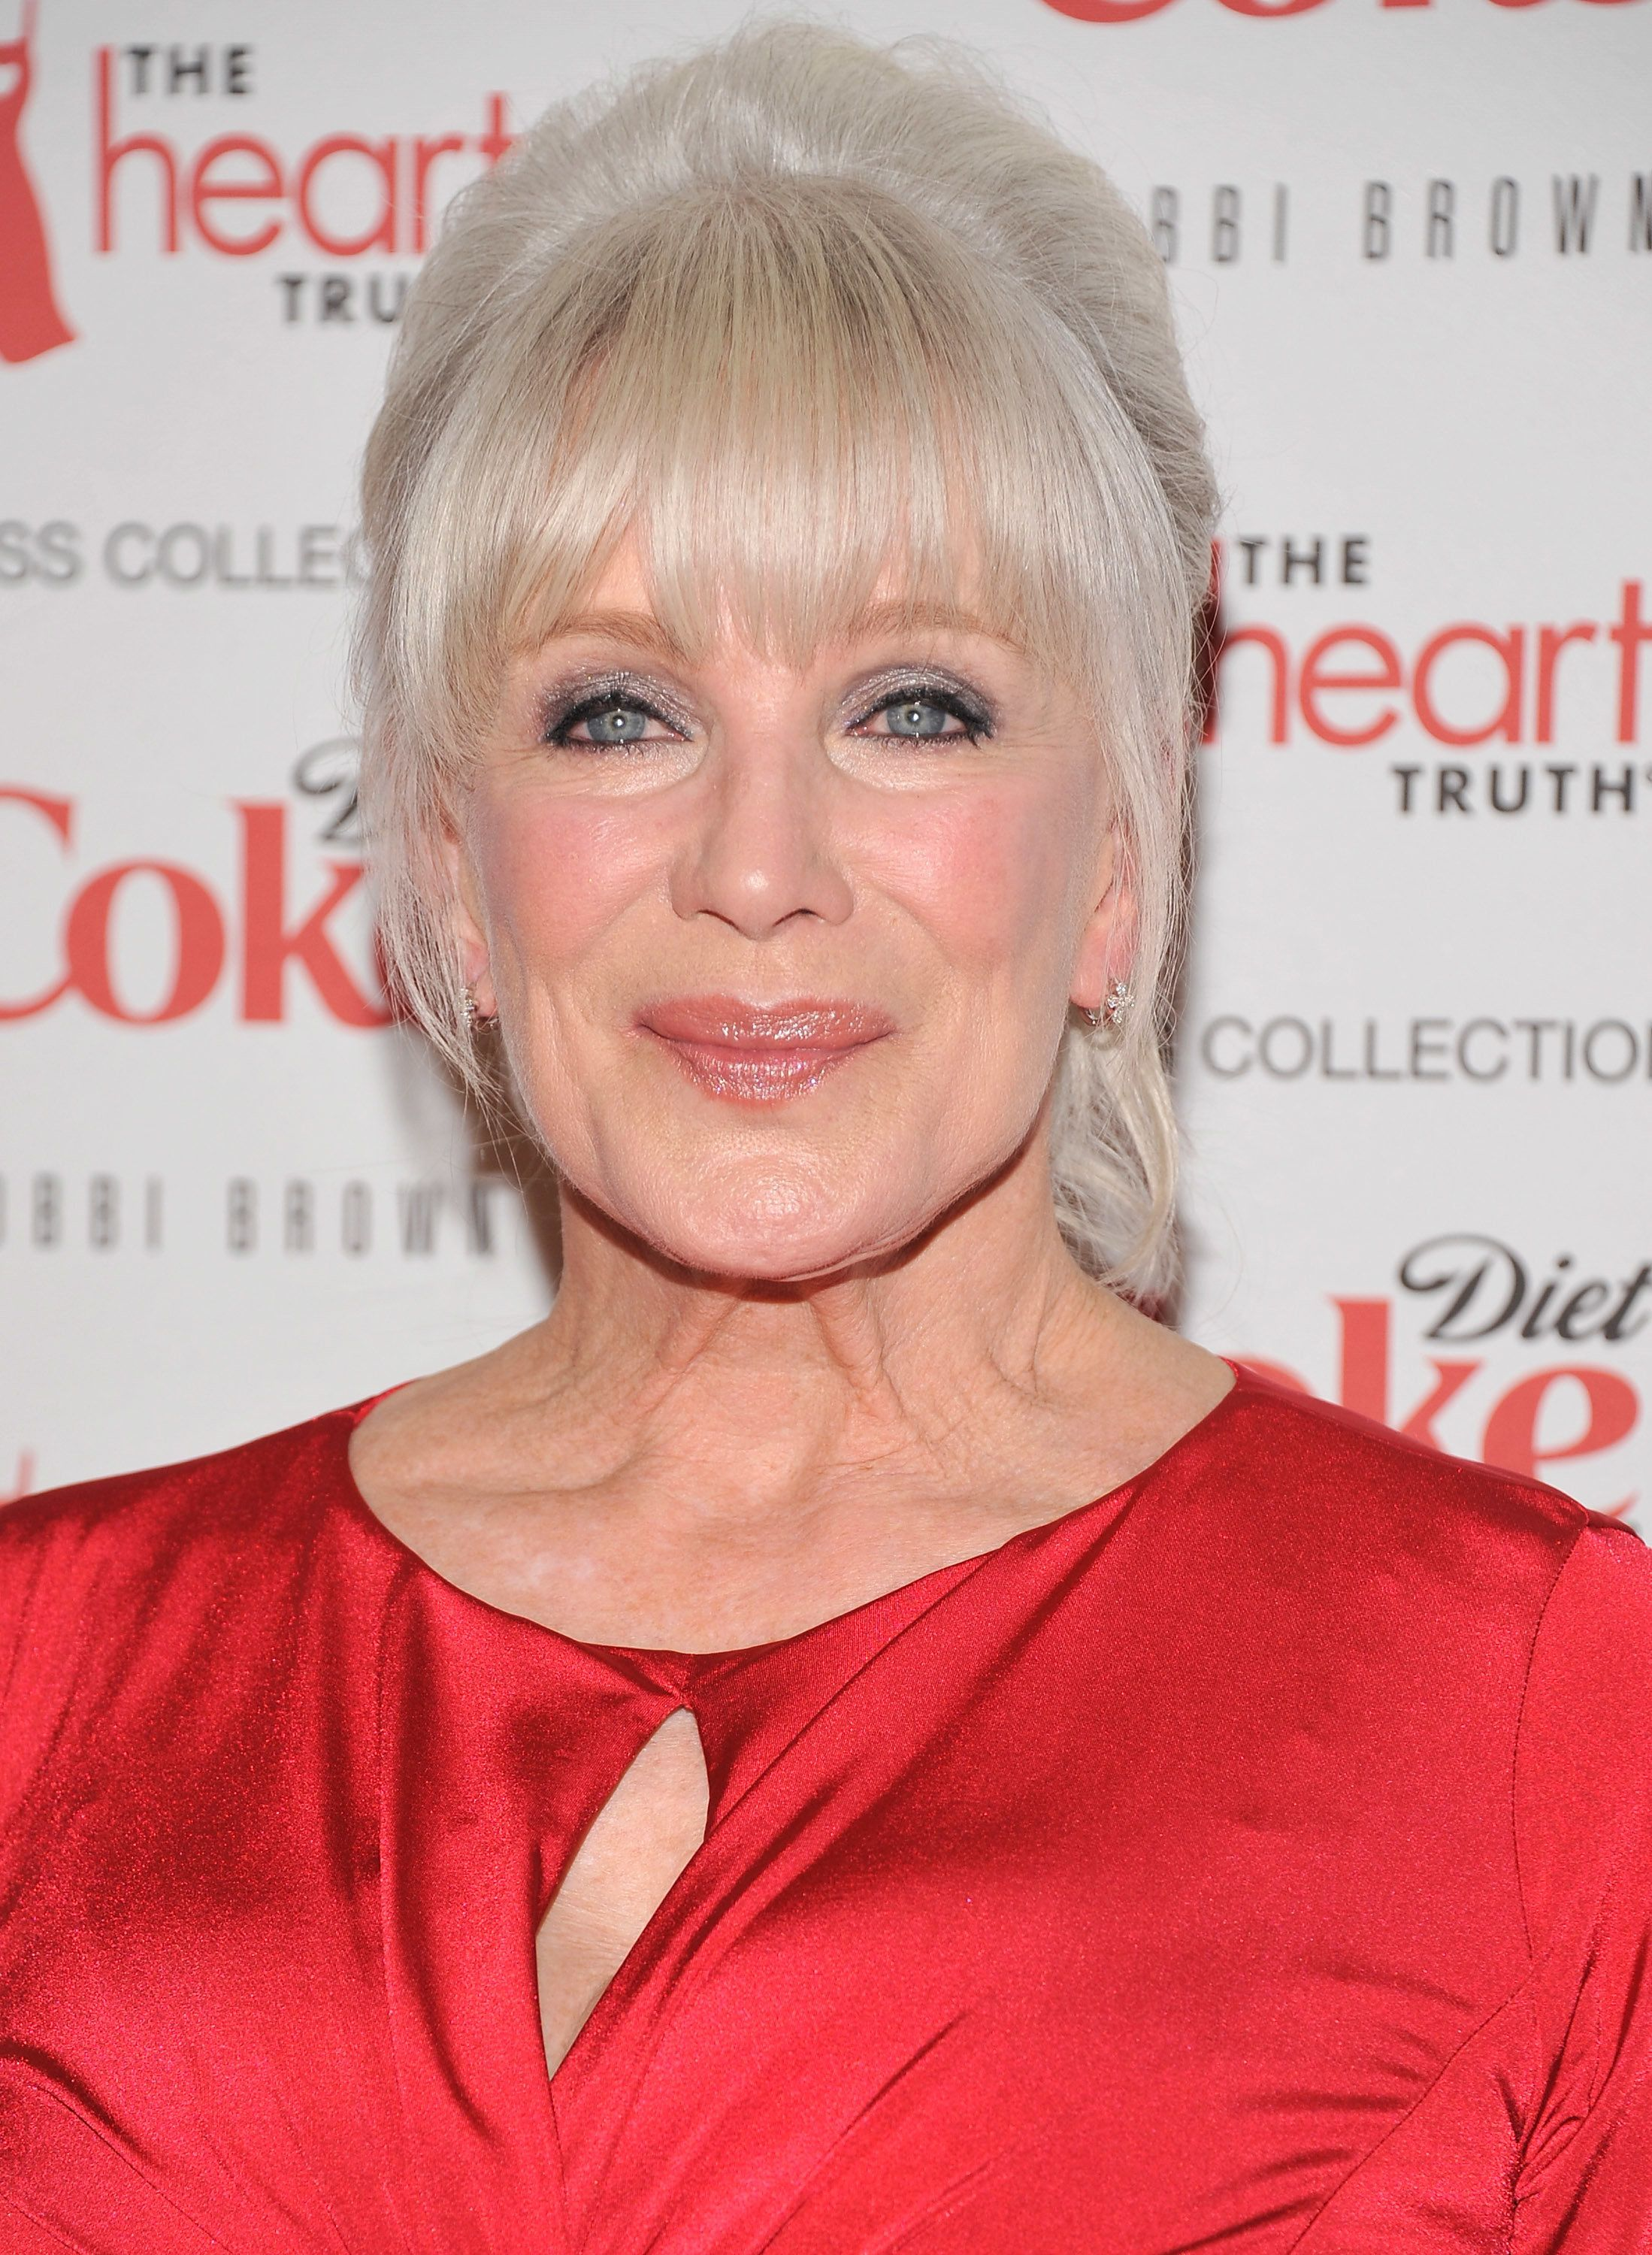 Linda Evans being considered for Mary Berry replacement on 'Bake Off',